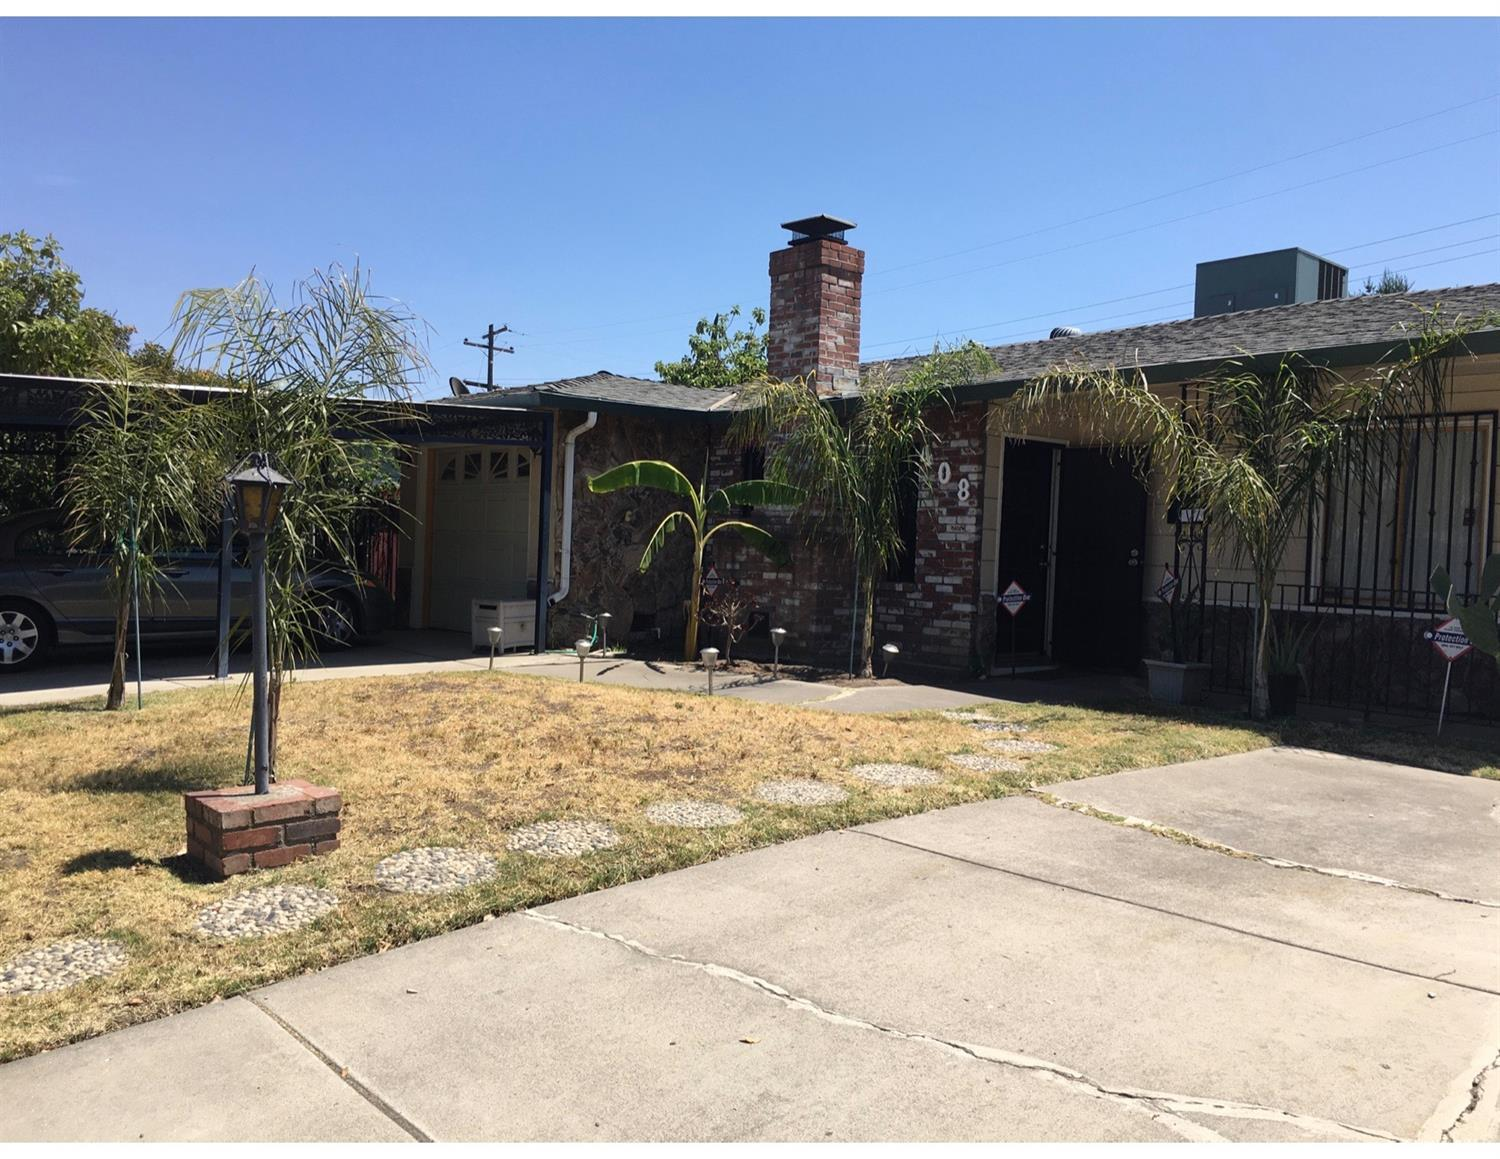 408 W 5th St, Stockton, CA 95206